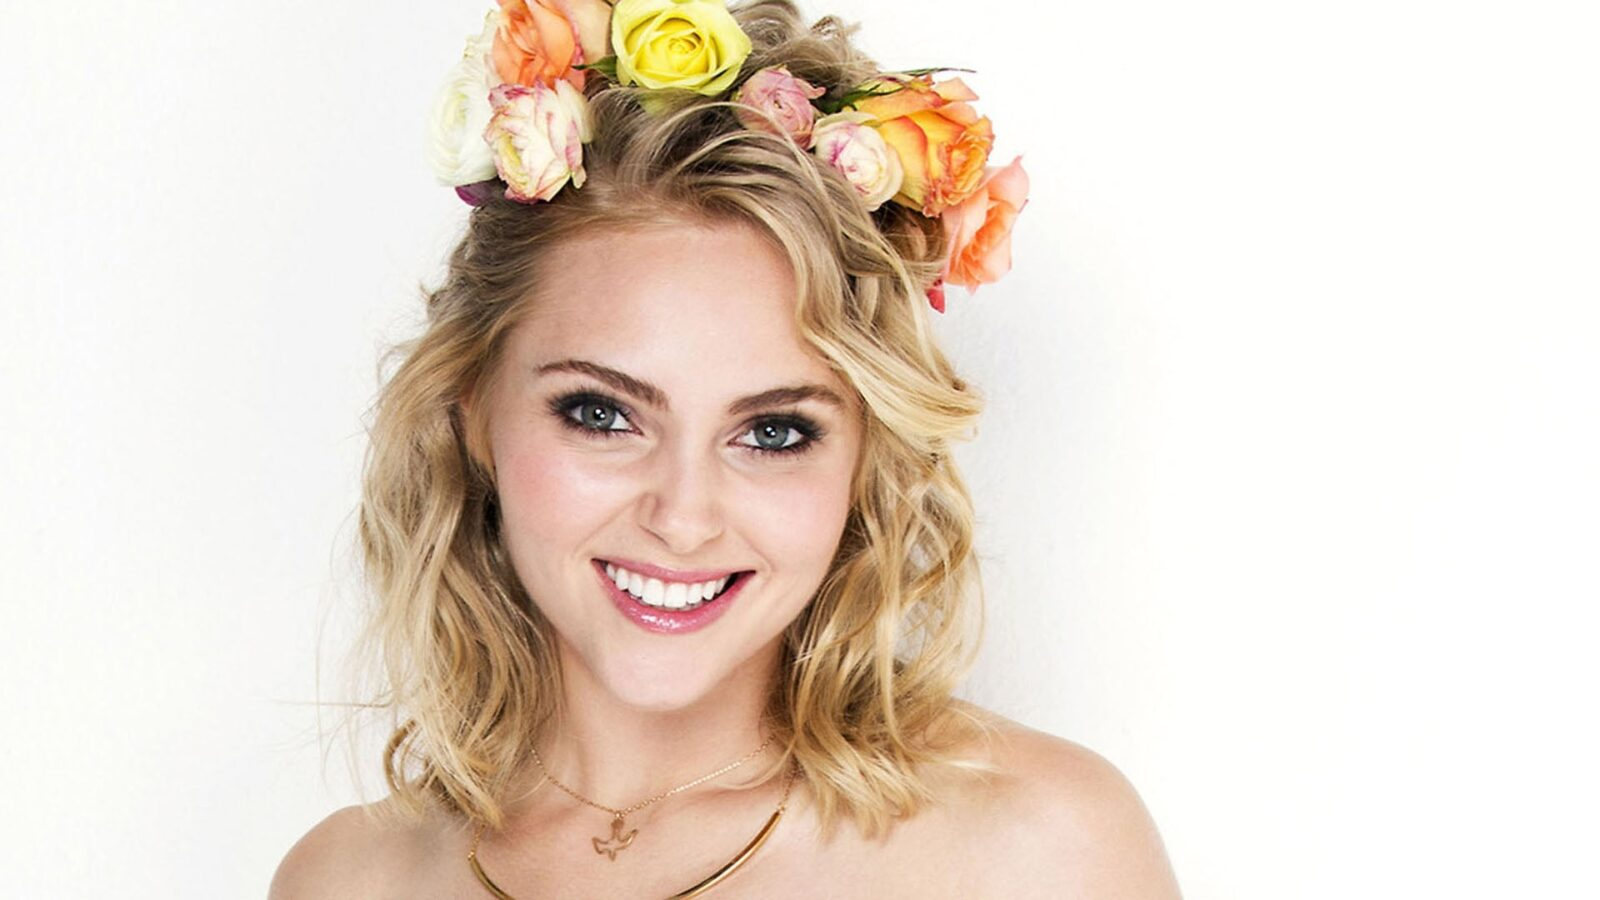 cool AnnaSophia Robb High Quality wallpapers